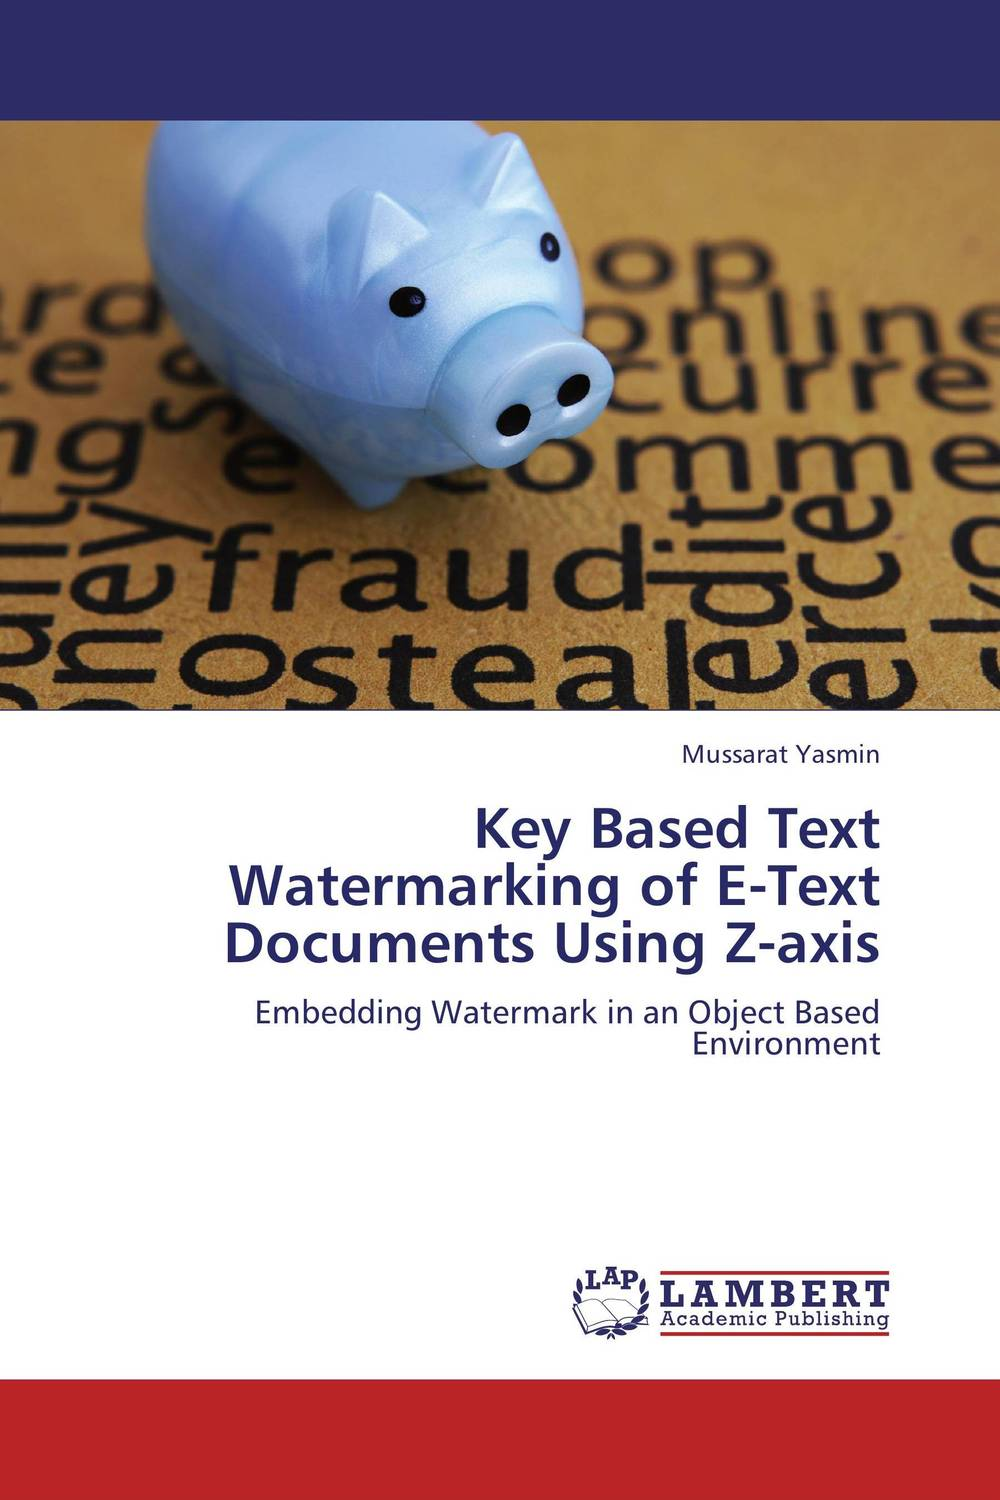 Key Based Text Watermarking of E-Text Documents Using Z-axis color image watermarking using matlab